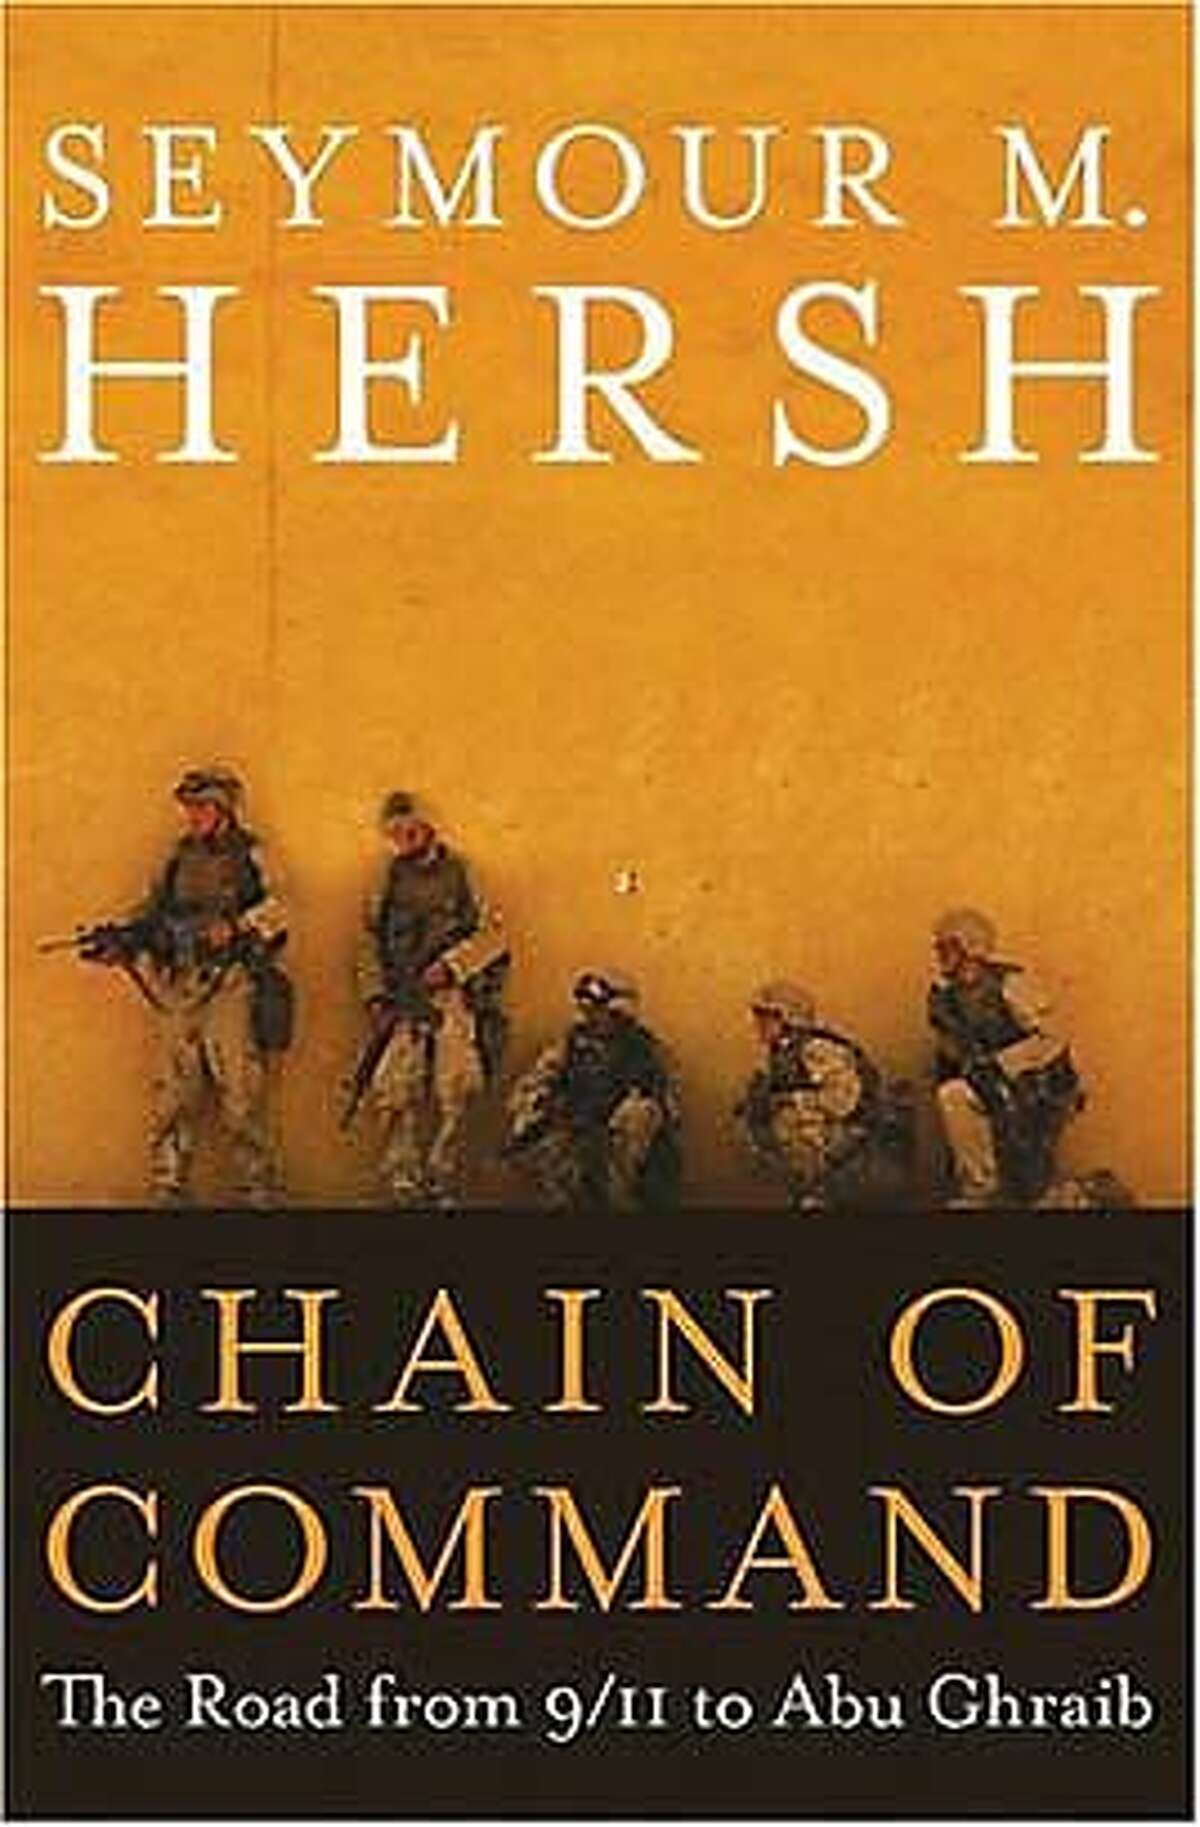 FALLBOOKS29a.JPG Book cover of CHAIN OF COMMAND by Seymour M. Hersh HANDOUT Ran on: 08-29-2004 BookReview#BookReview#Chronicle#08-29-2004#ALL#Advance#m3#0422292510 Datebook#Datebook#Chronicle#10/14/2004#ALL#Advance##0422292510